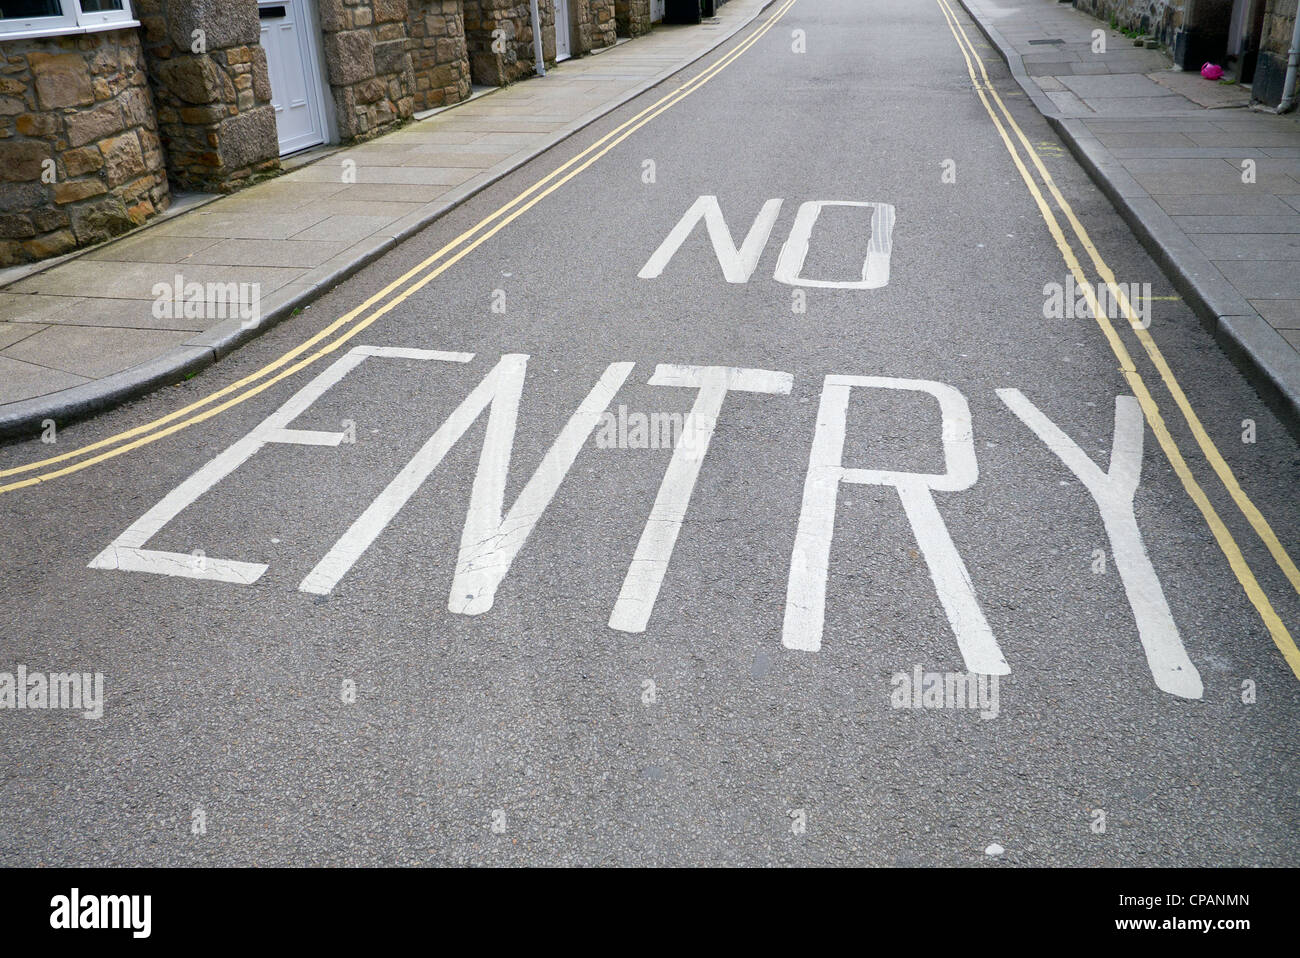 No Entry words in white paint on a road. - Stock Image